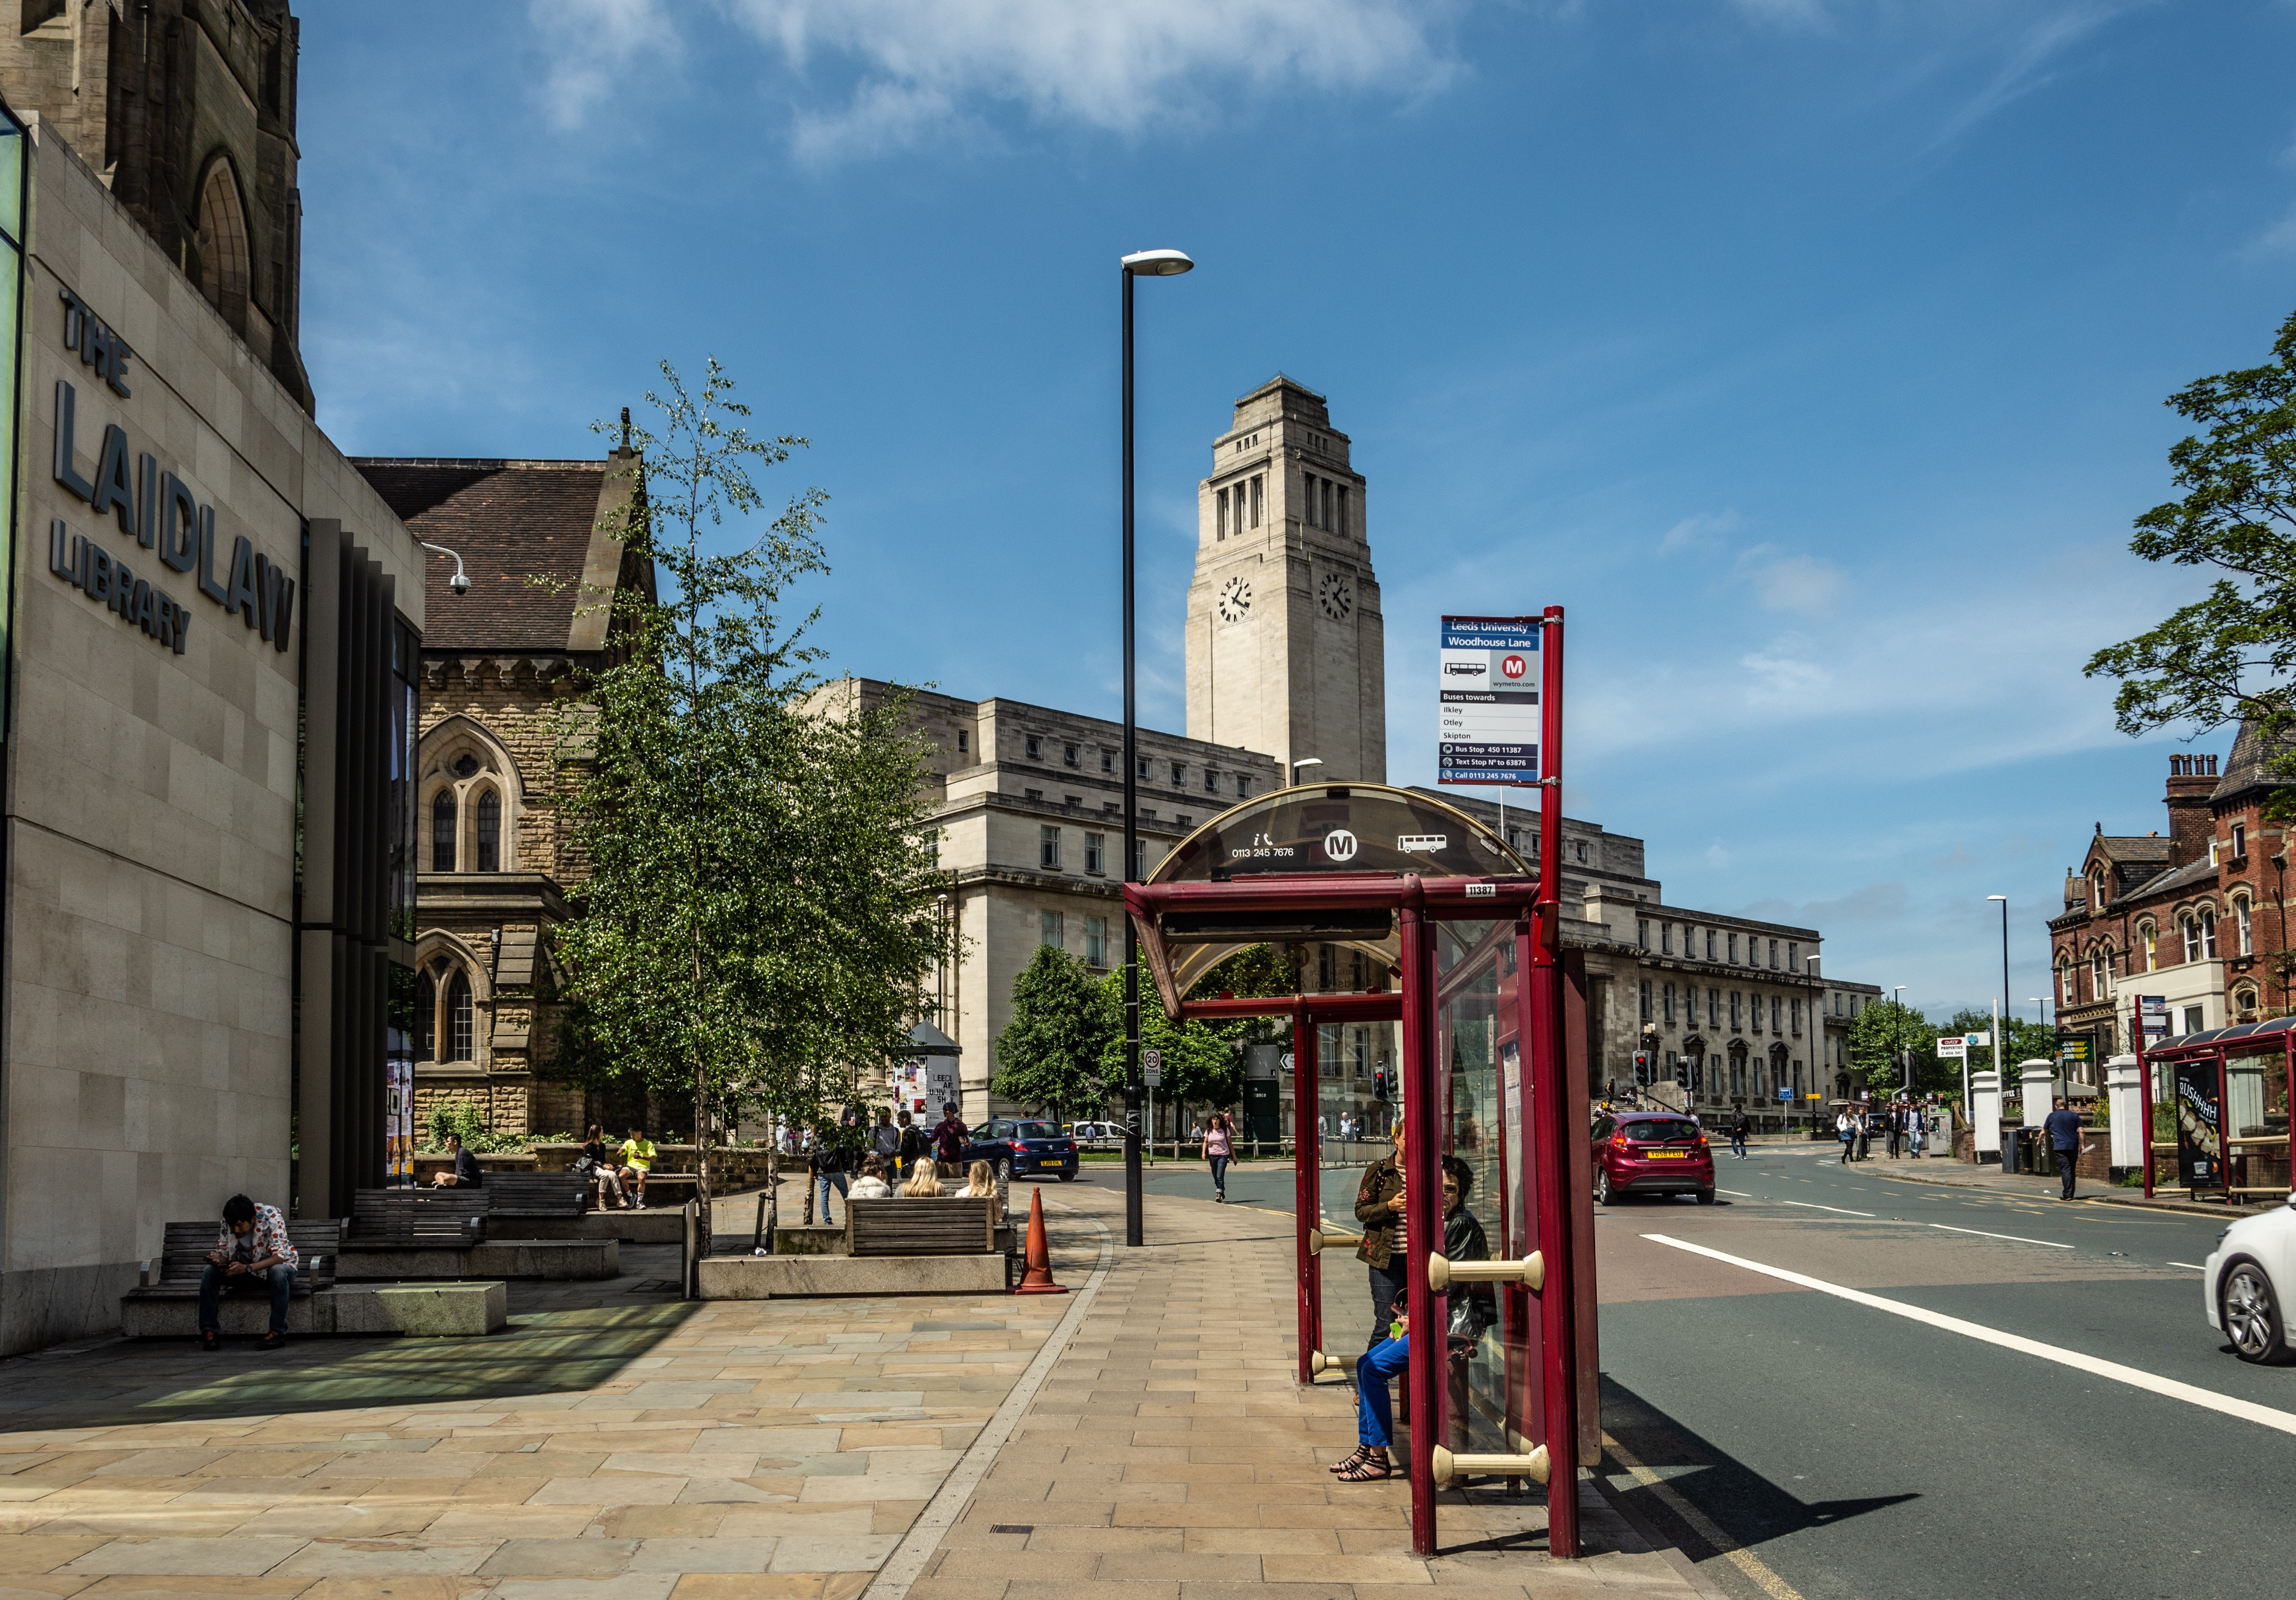 Travelling to campus on open day - University of Leeds - Medium